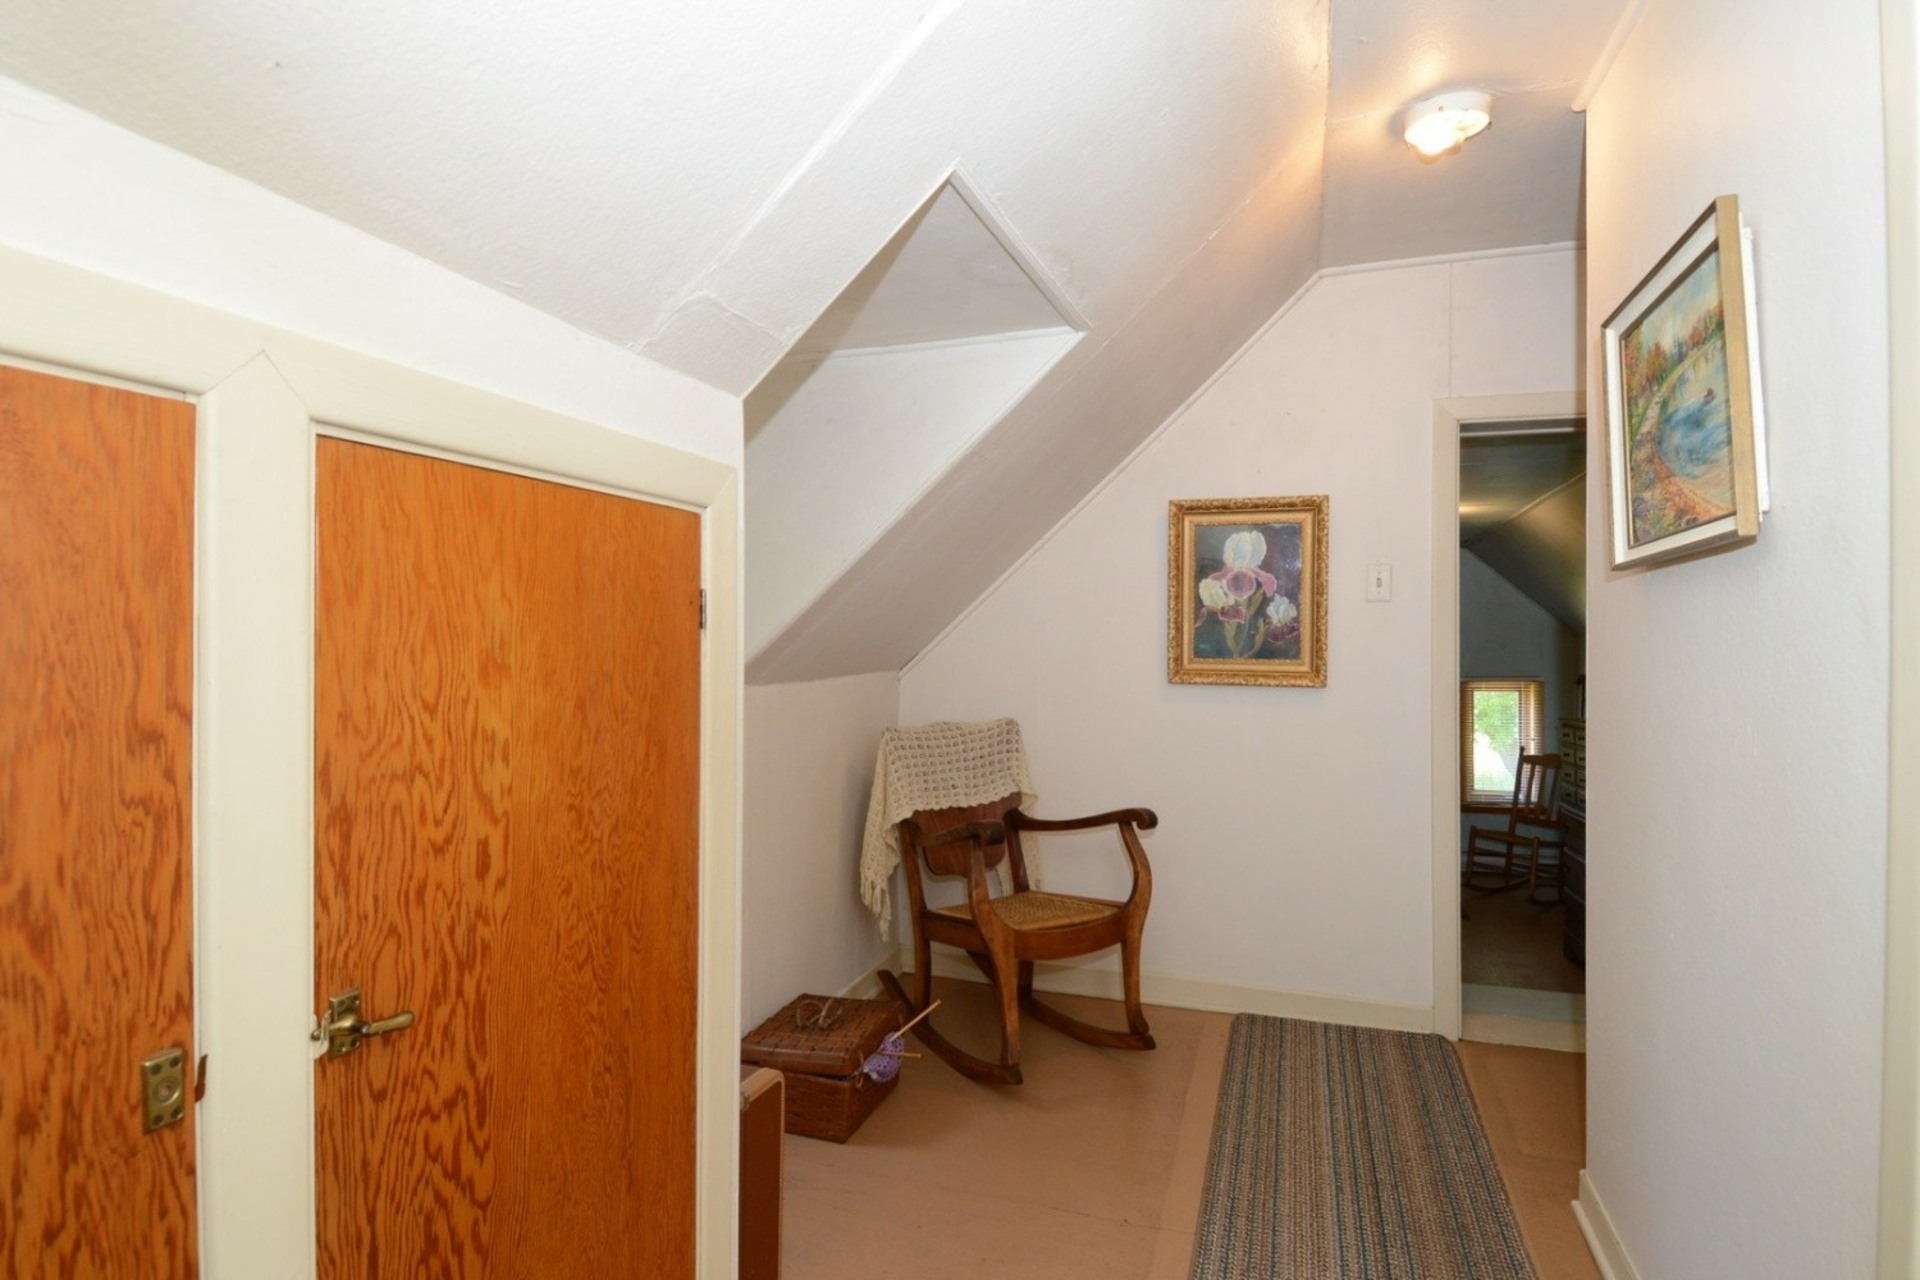 image 11 - Farmhouse For sale Rigaud - 8 rooms